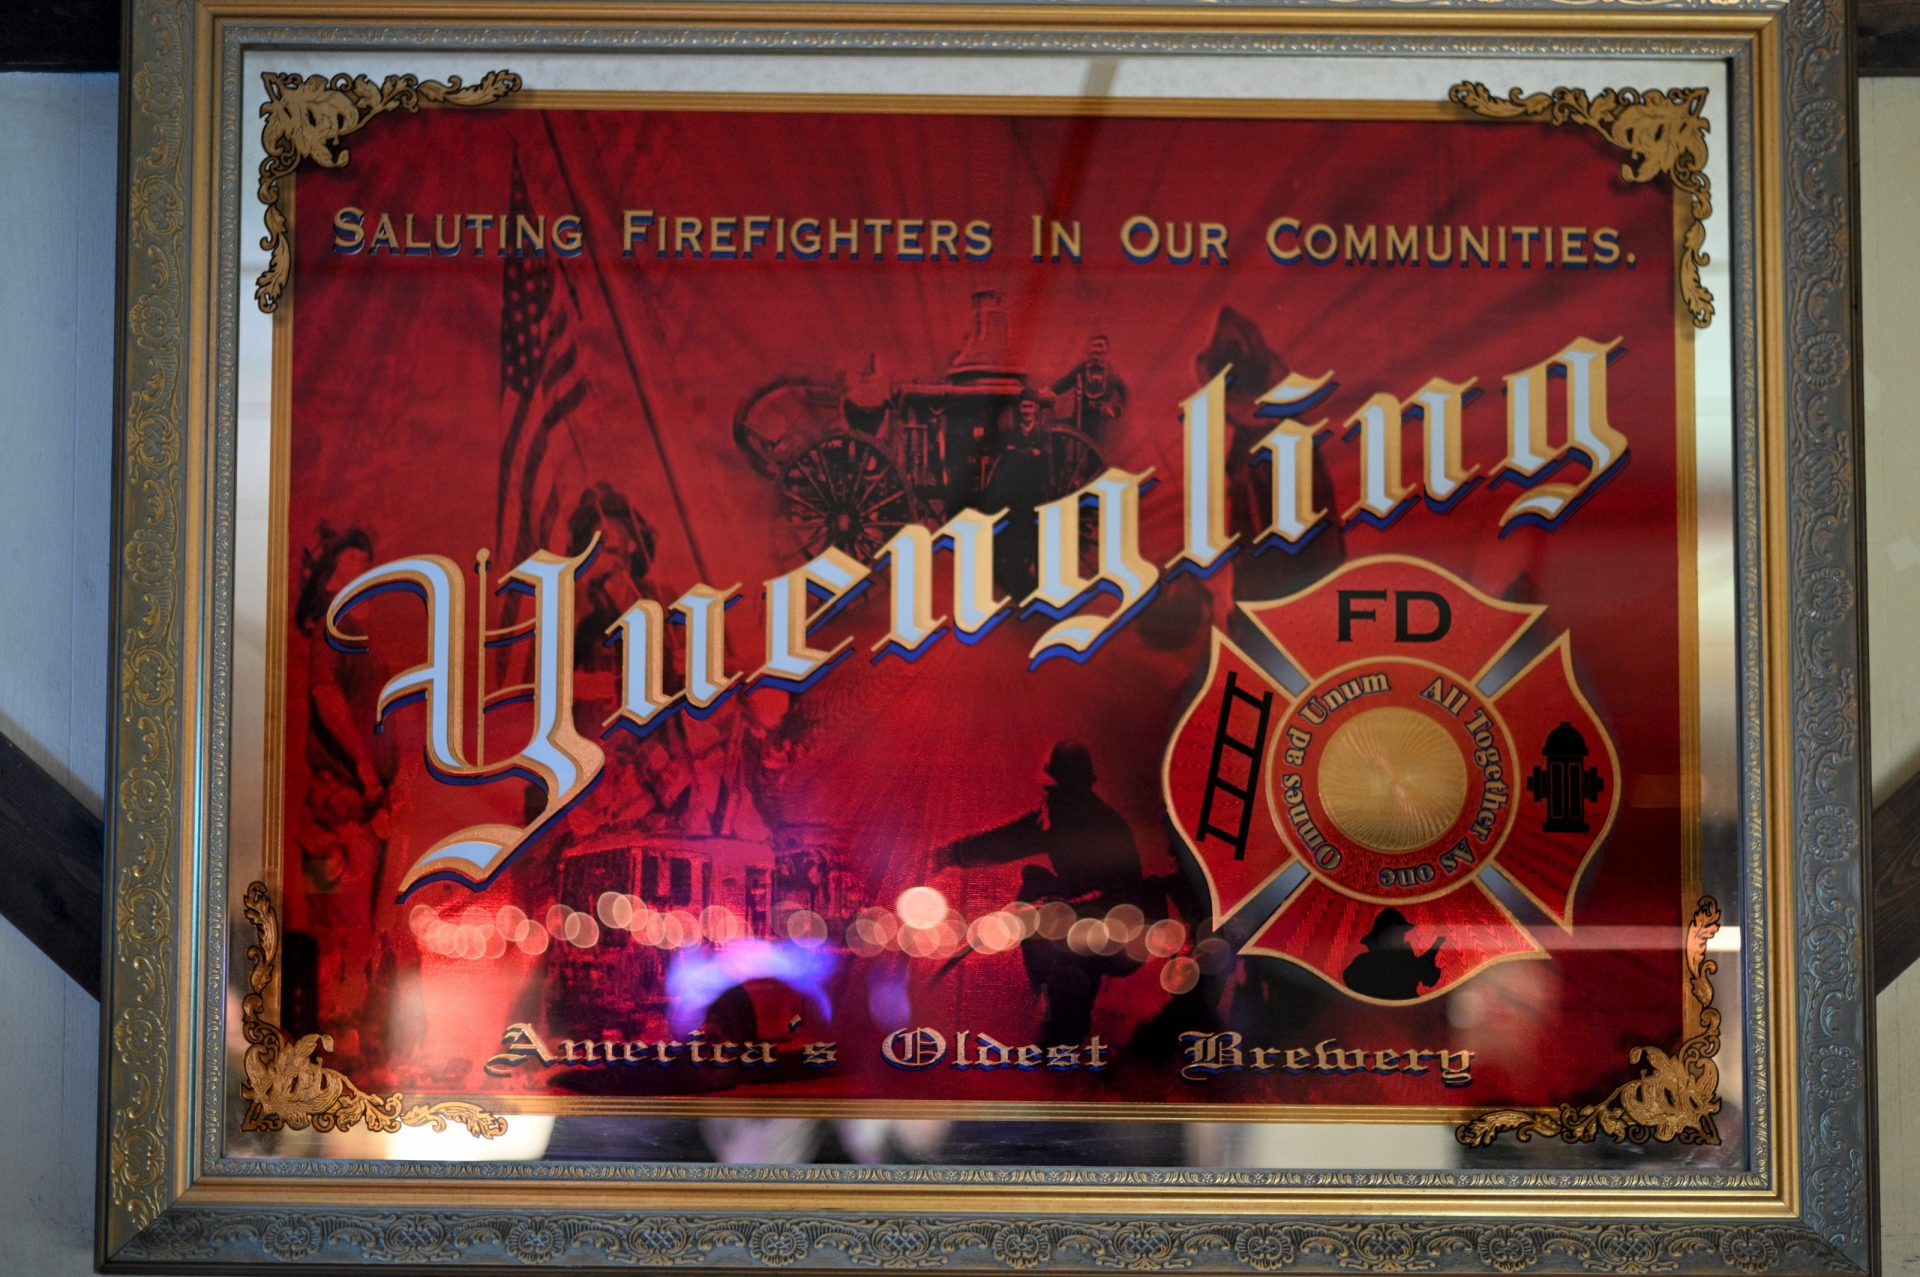 Interior details found at the Social Quarters of Deer Lake & West Brunswick Fire Company No. 1, in Orwigsburg, PA, on December 15, 2019.